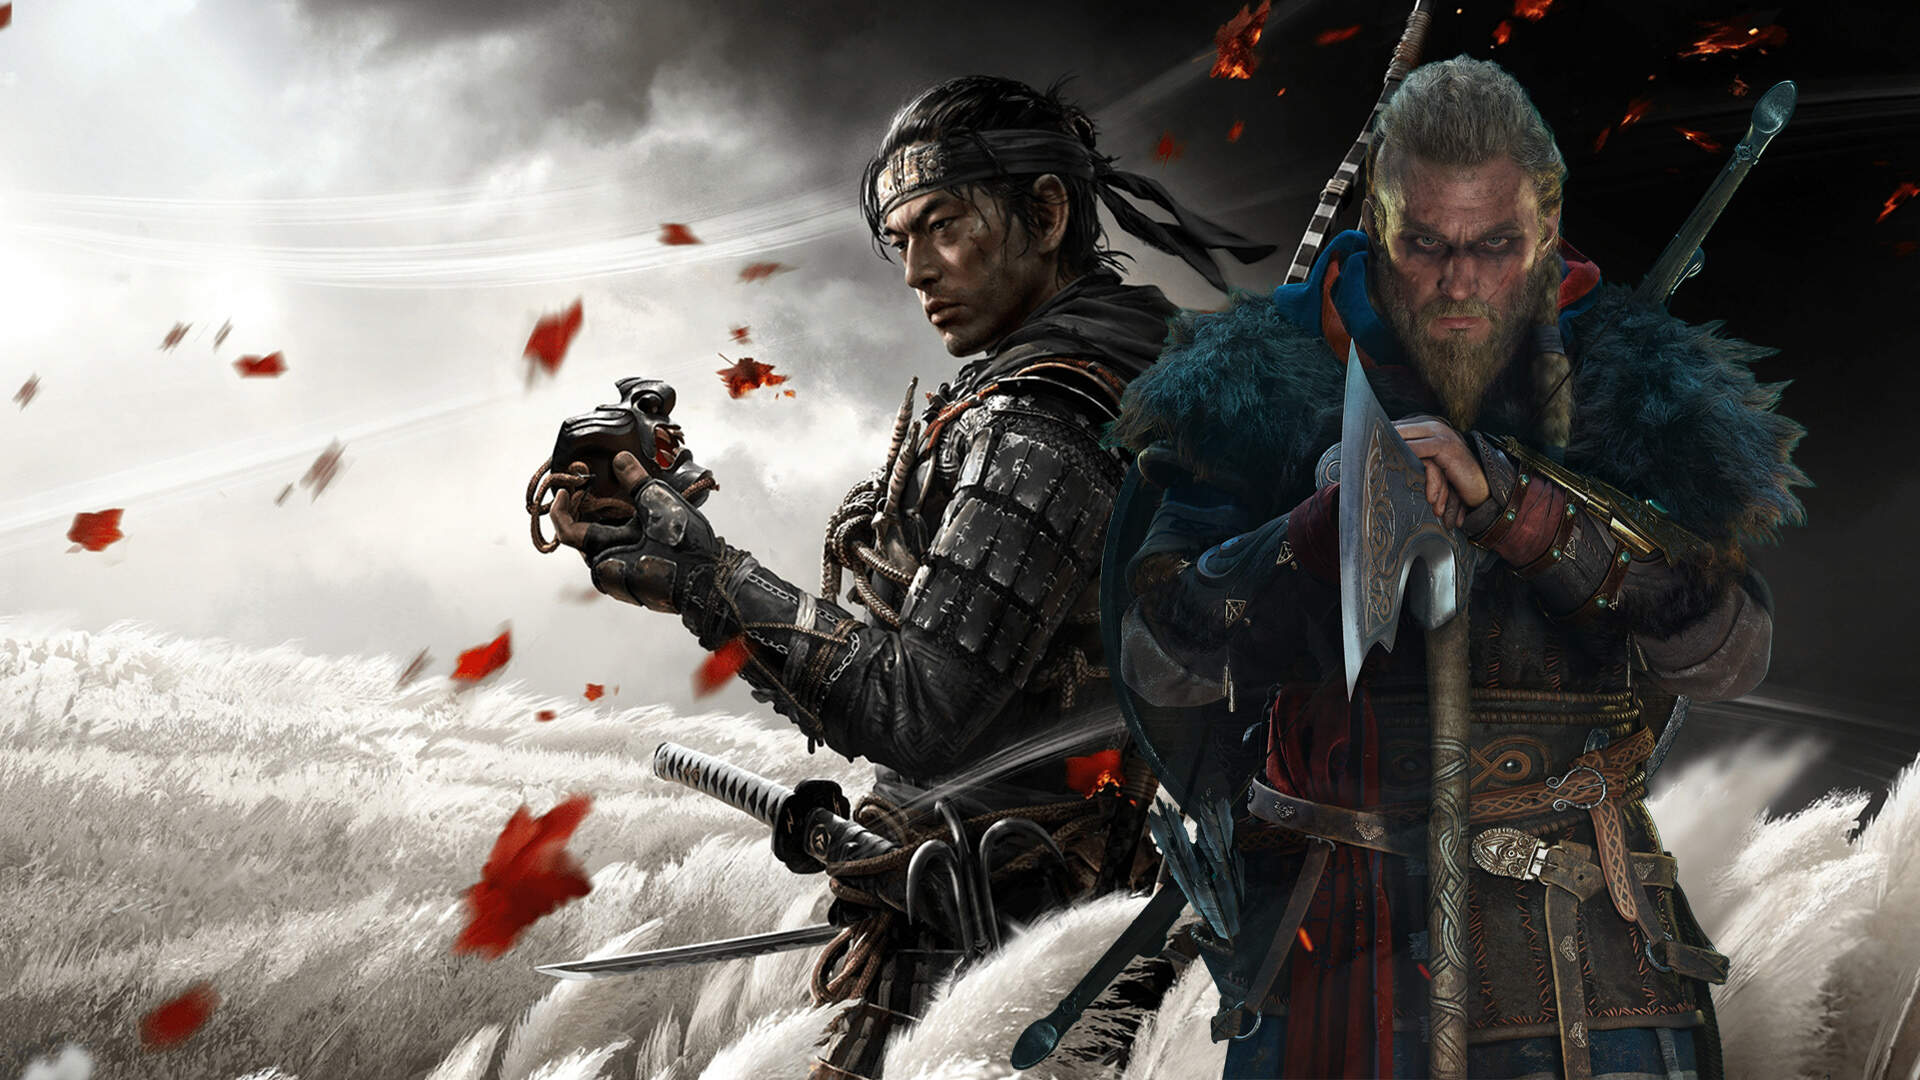 Ghost of Tsushima vs. Assassin's Creed Valhalla: The Past Meets The Future